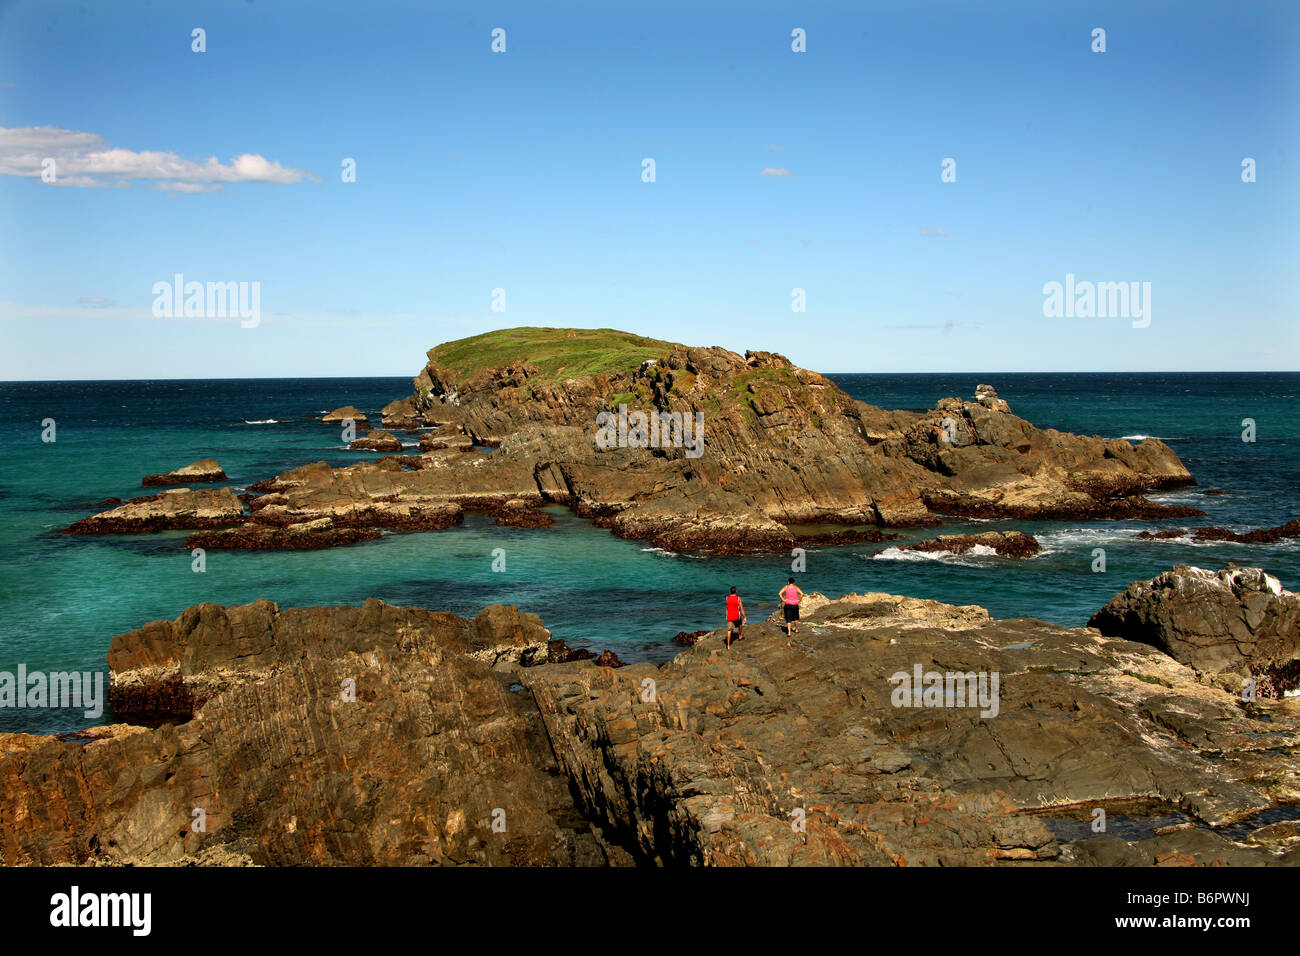 An outcrop of Australian base rock projects into the Ocean at Delicate Nobby Crescent Heads NSW Australia - Stock Image